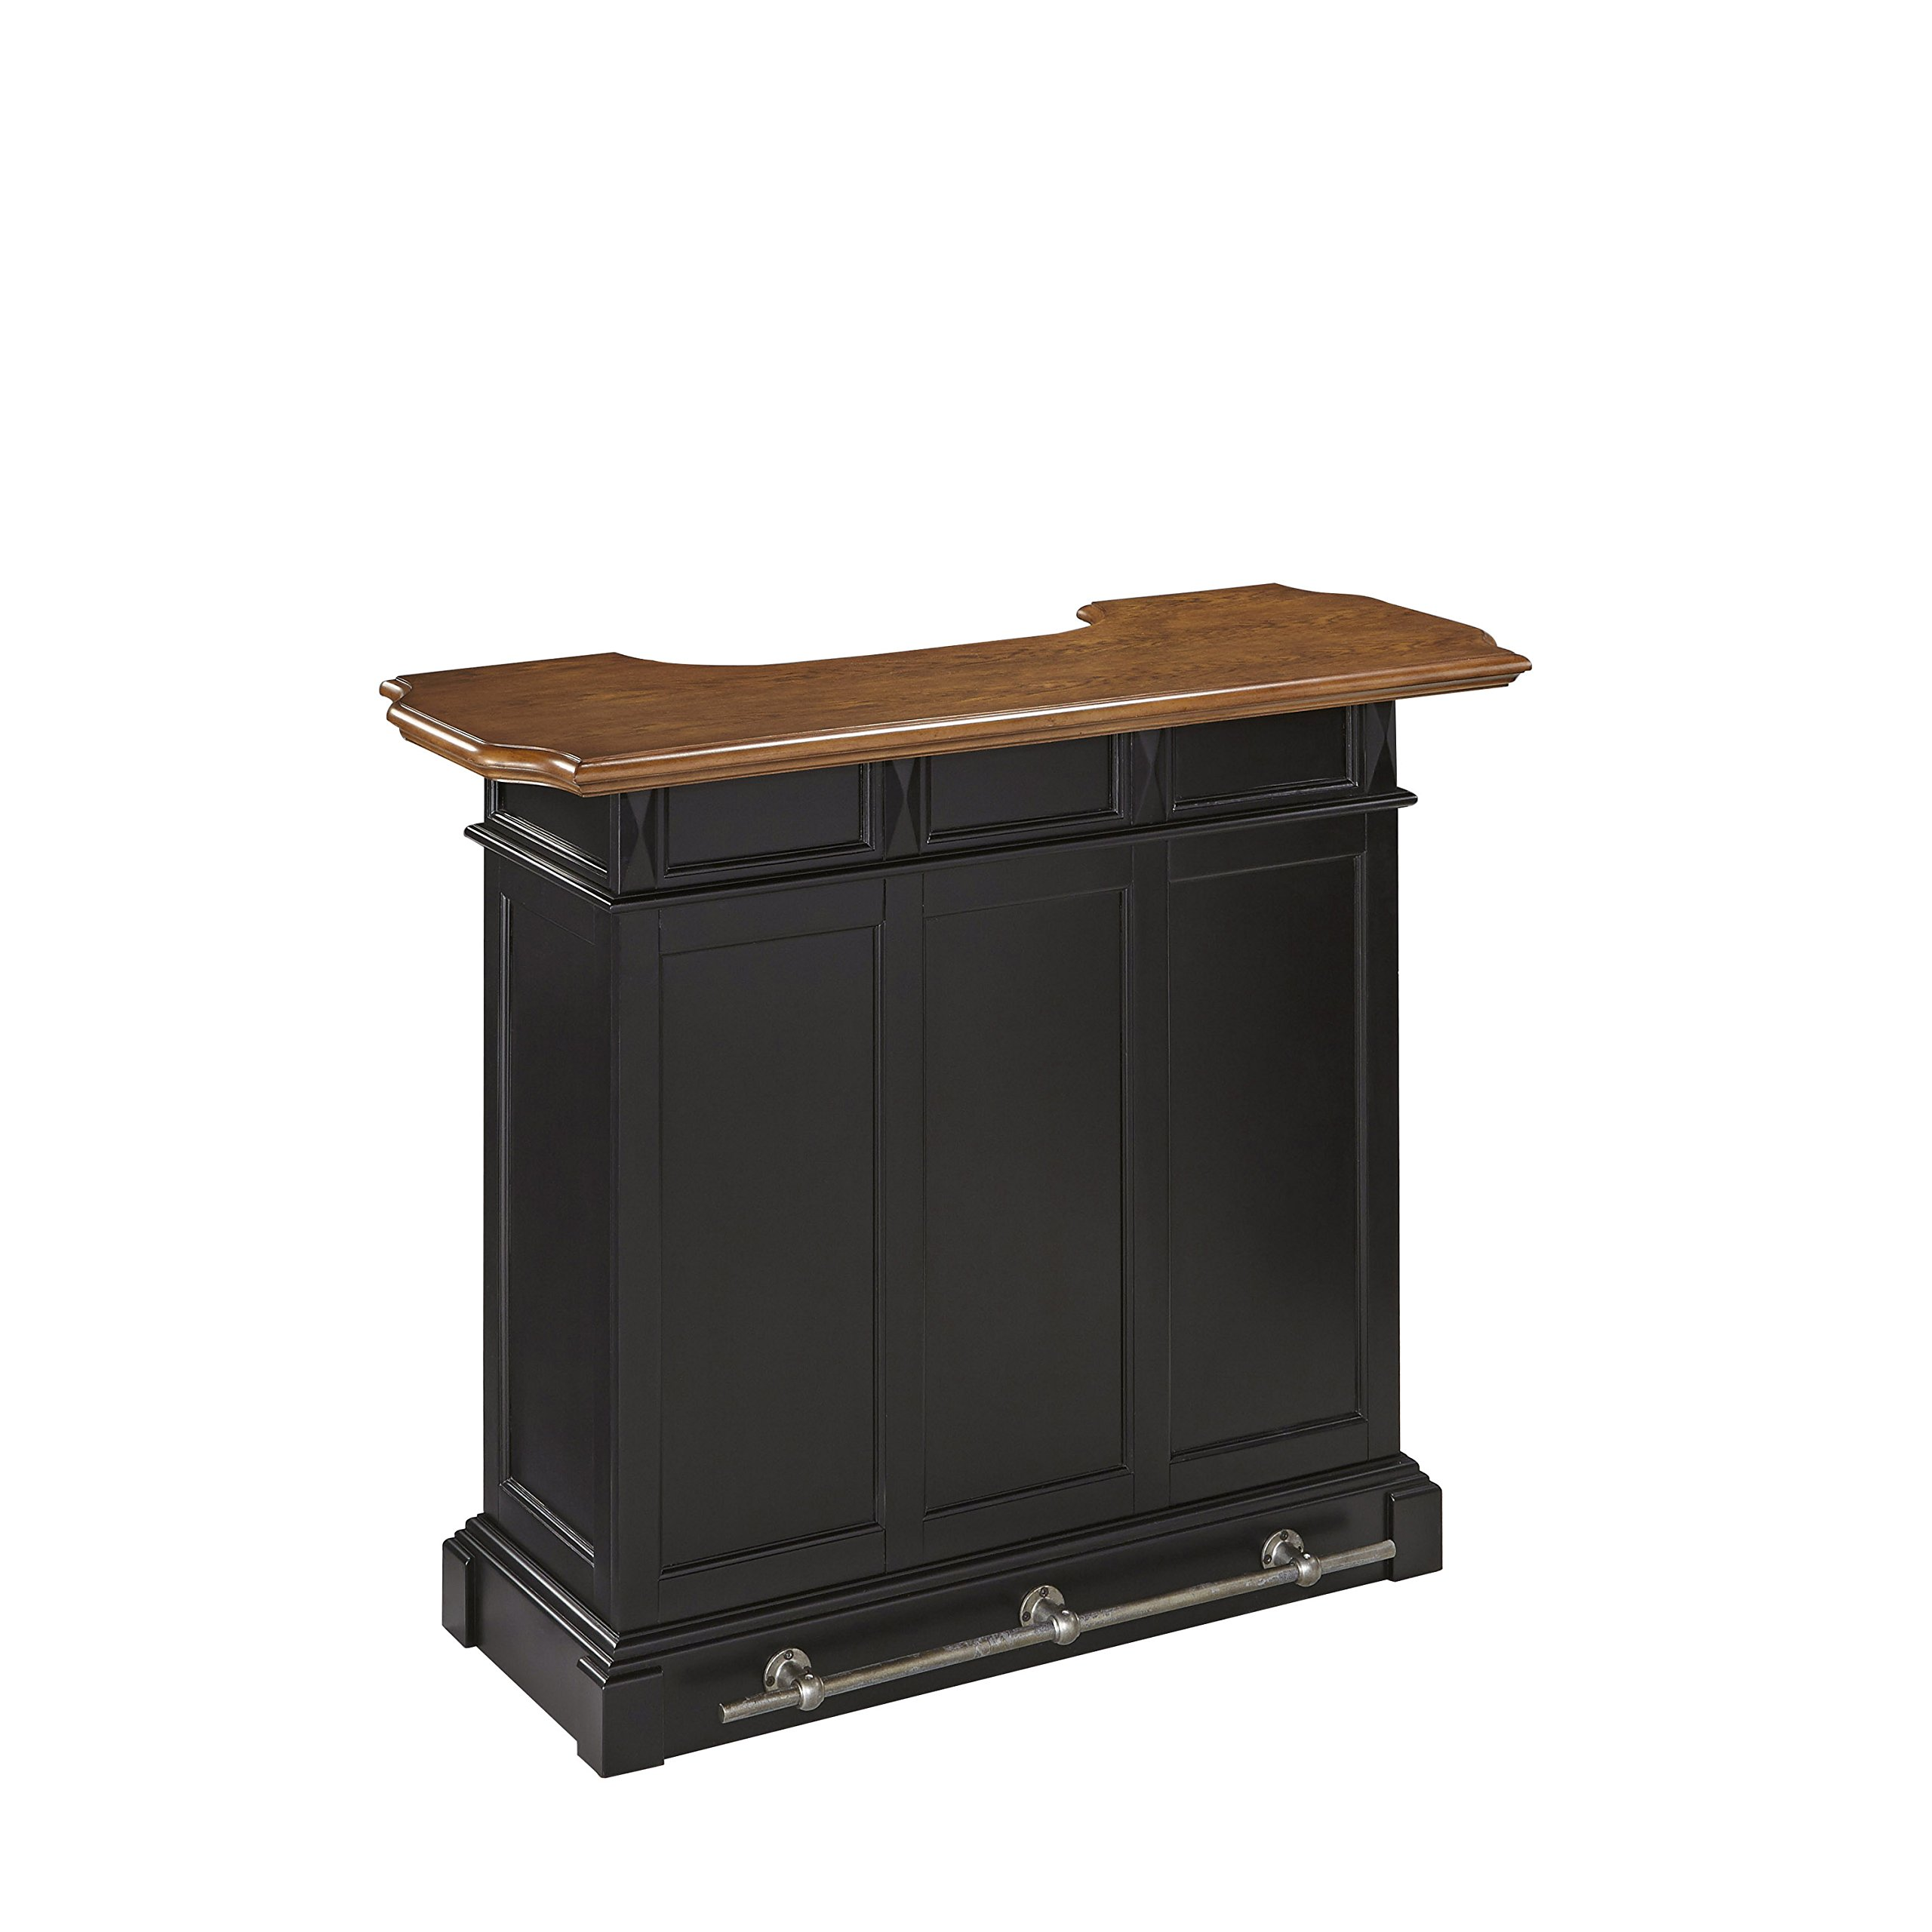 Home Styles Model  5003-99  Black and Oak Finish Americana Bar by Home Styles